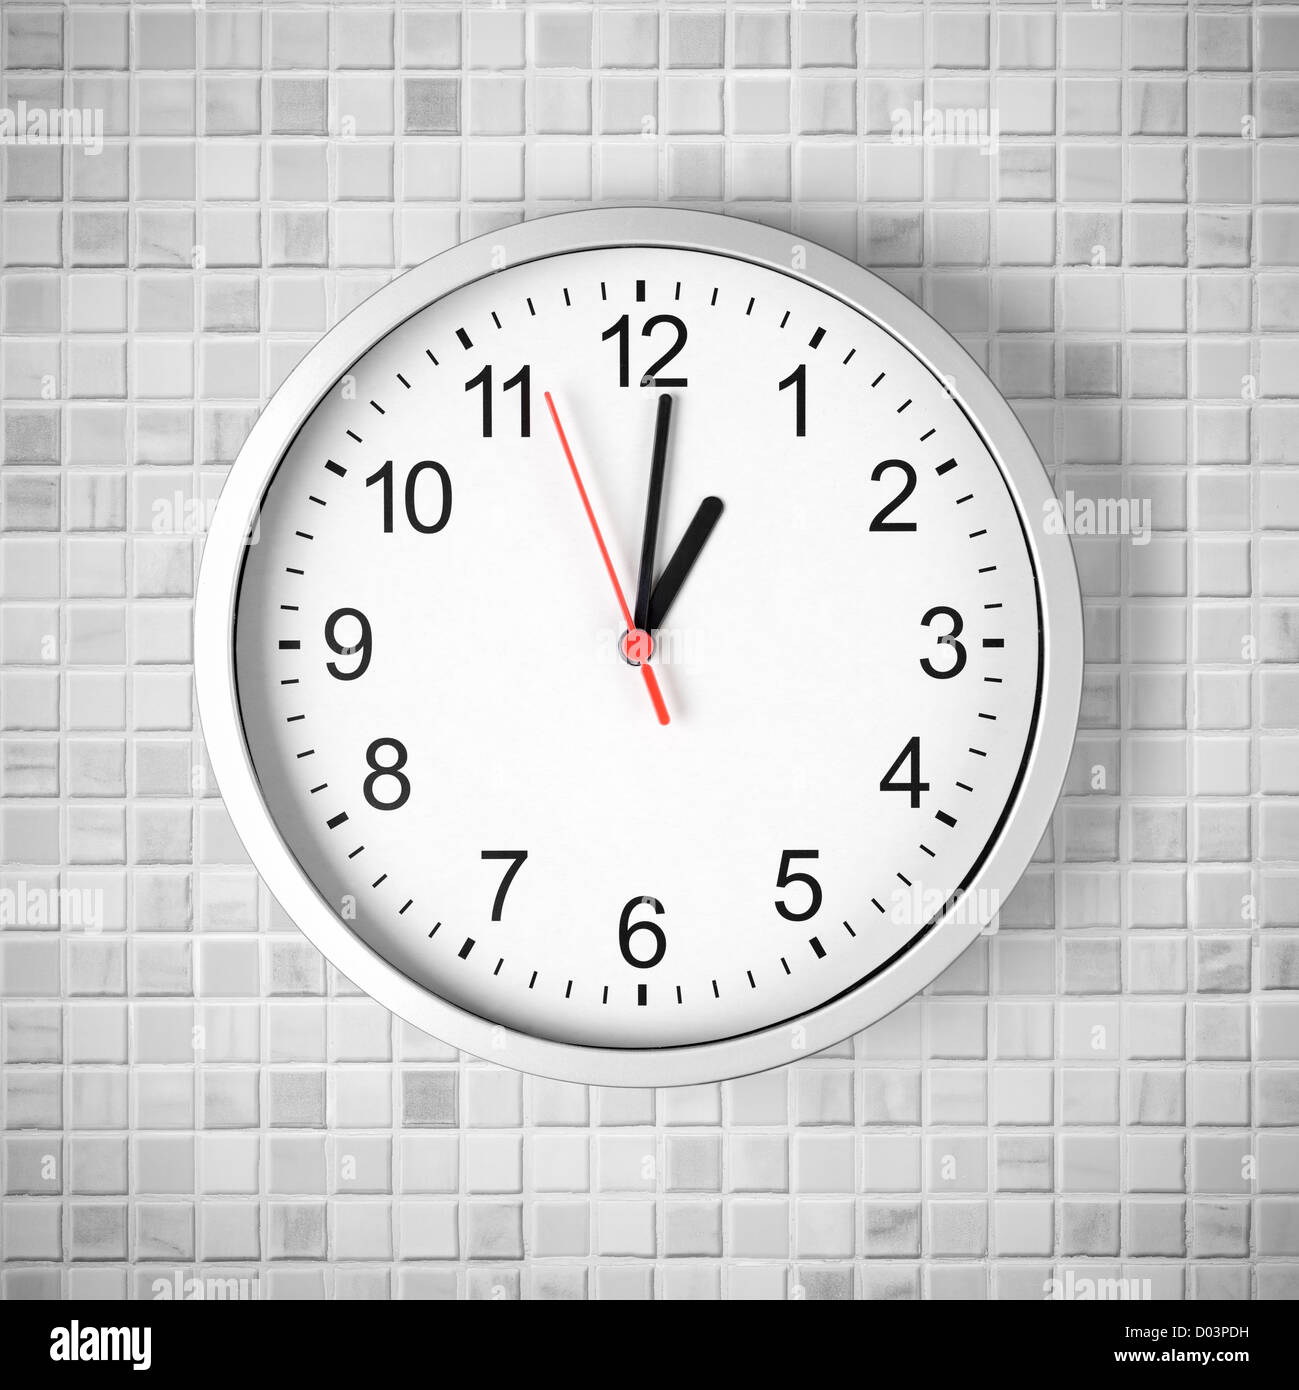 Simple Clock Or Watch On White Tile Wall Displaying One O